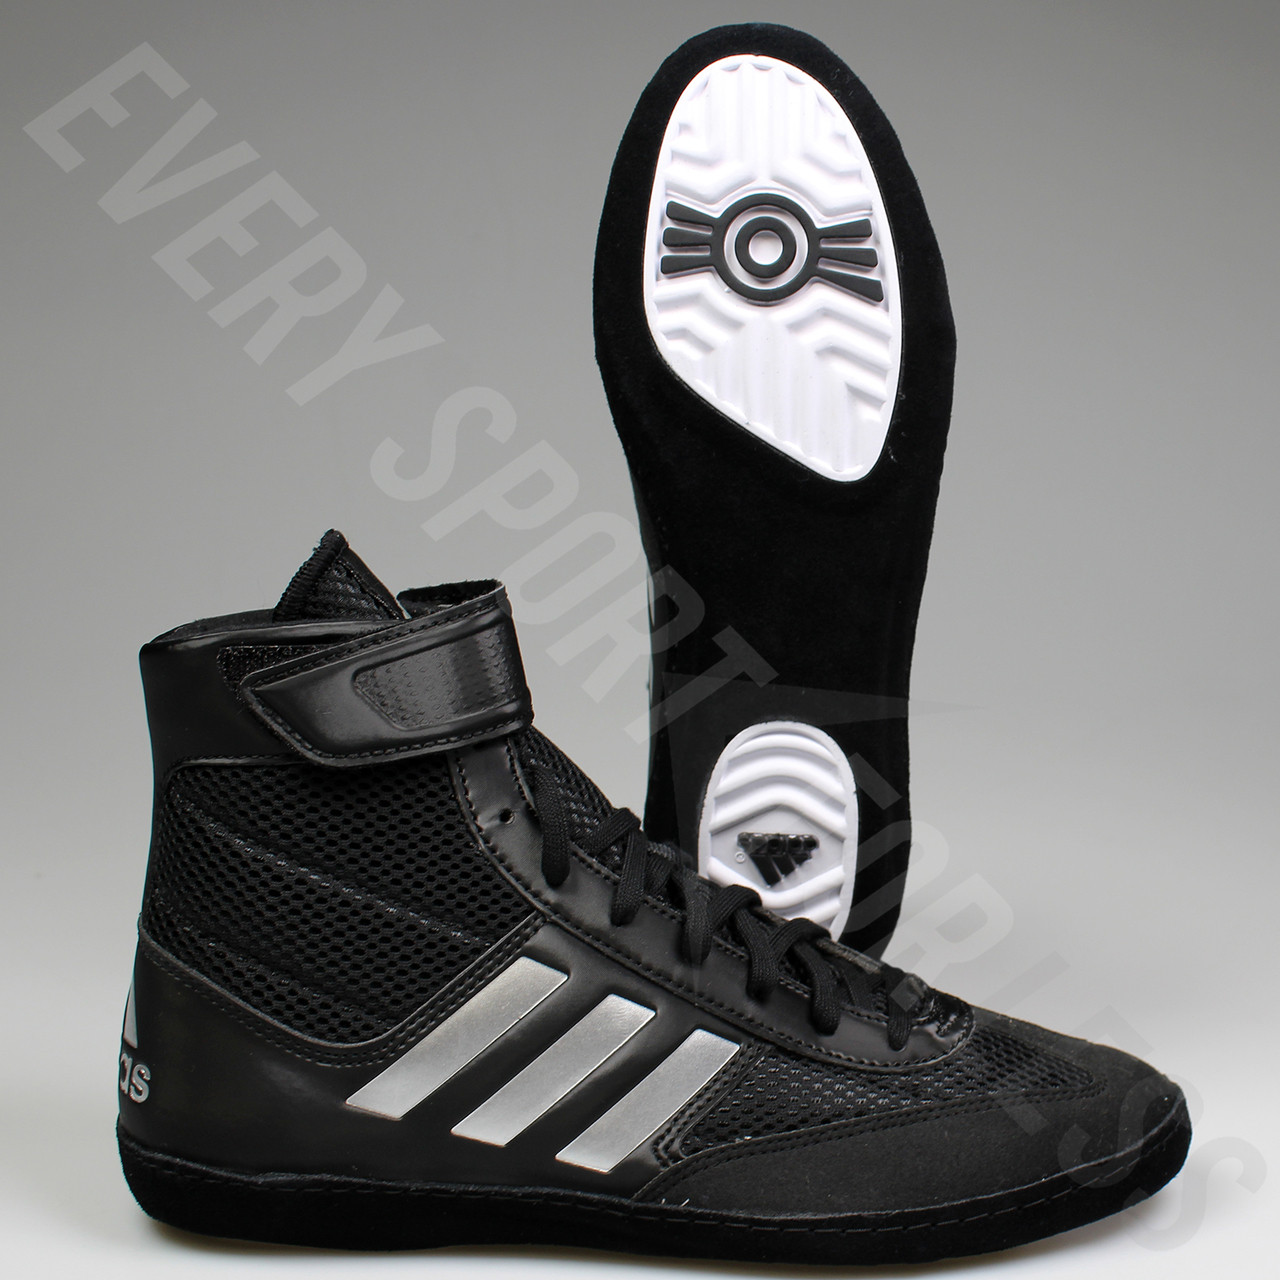 buy popular 0f9da 36872 ... Adidas Combat Speed 5 Mens Wrestling Shoes BA8007 - Black   Silver ...